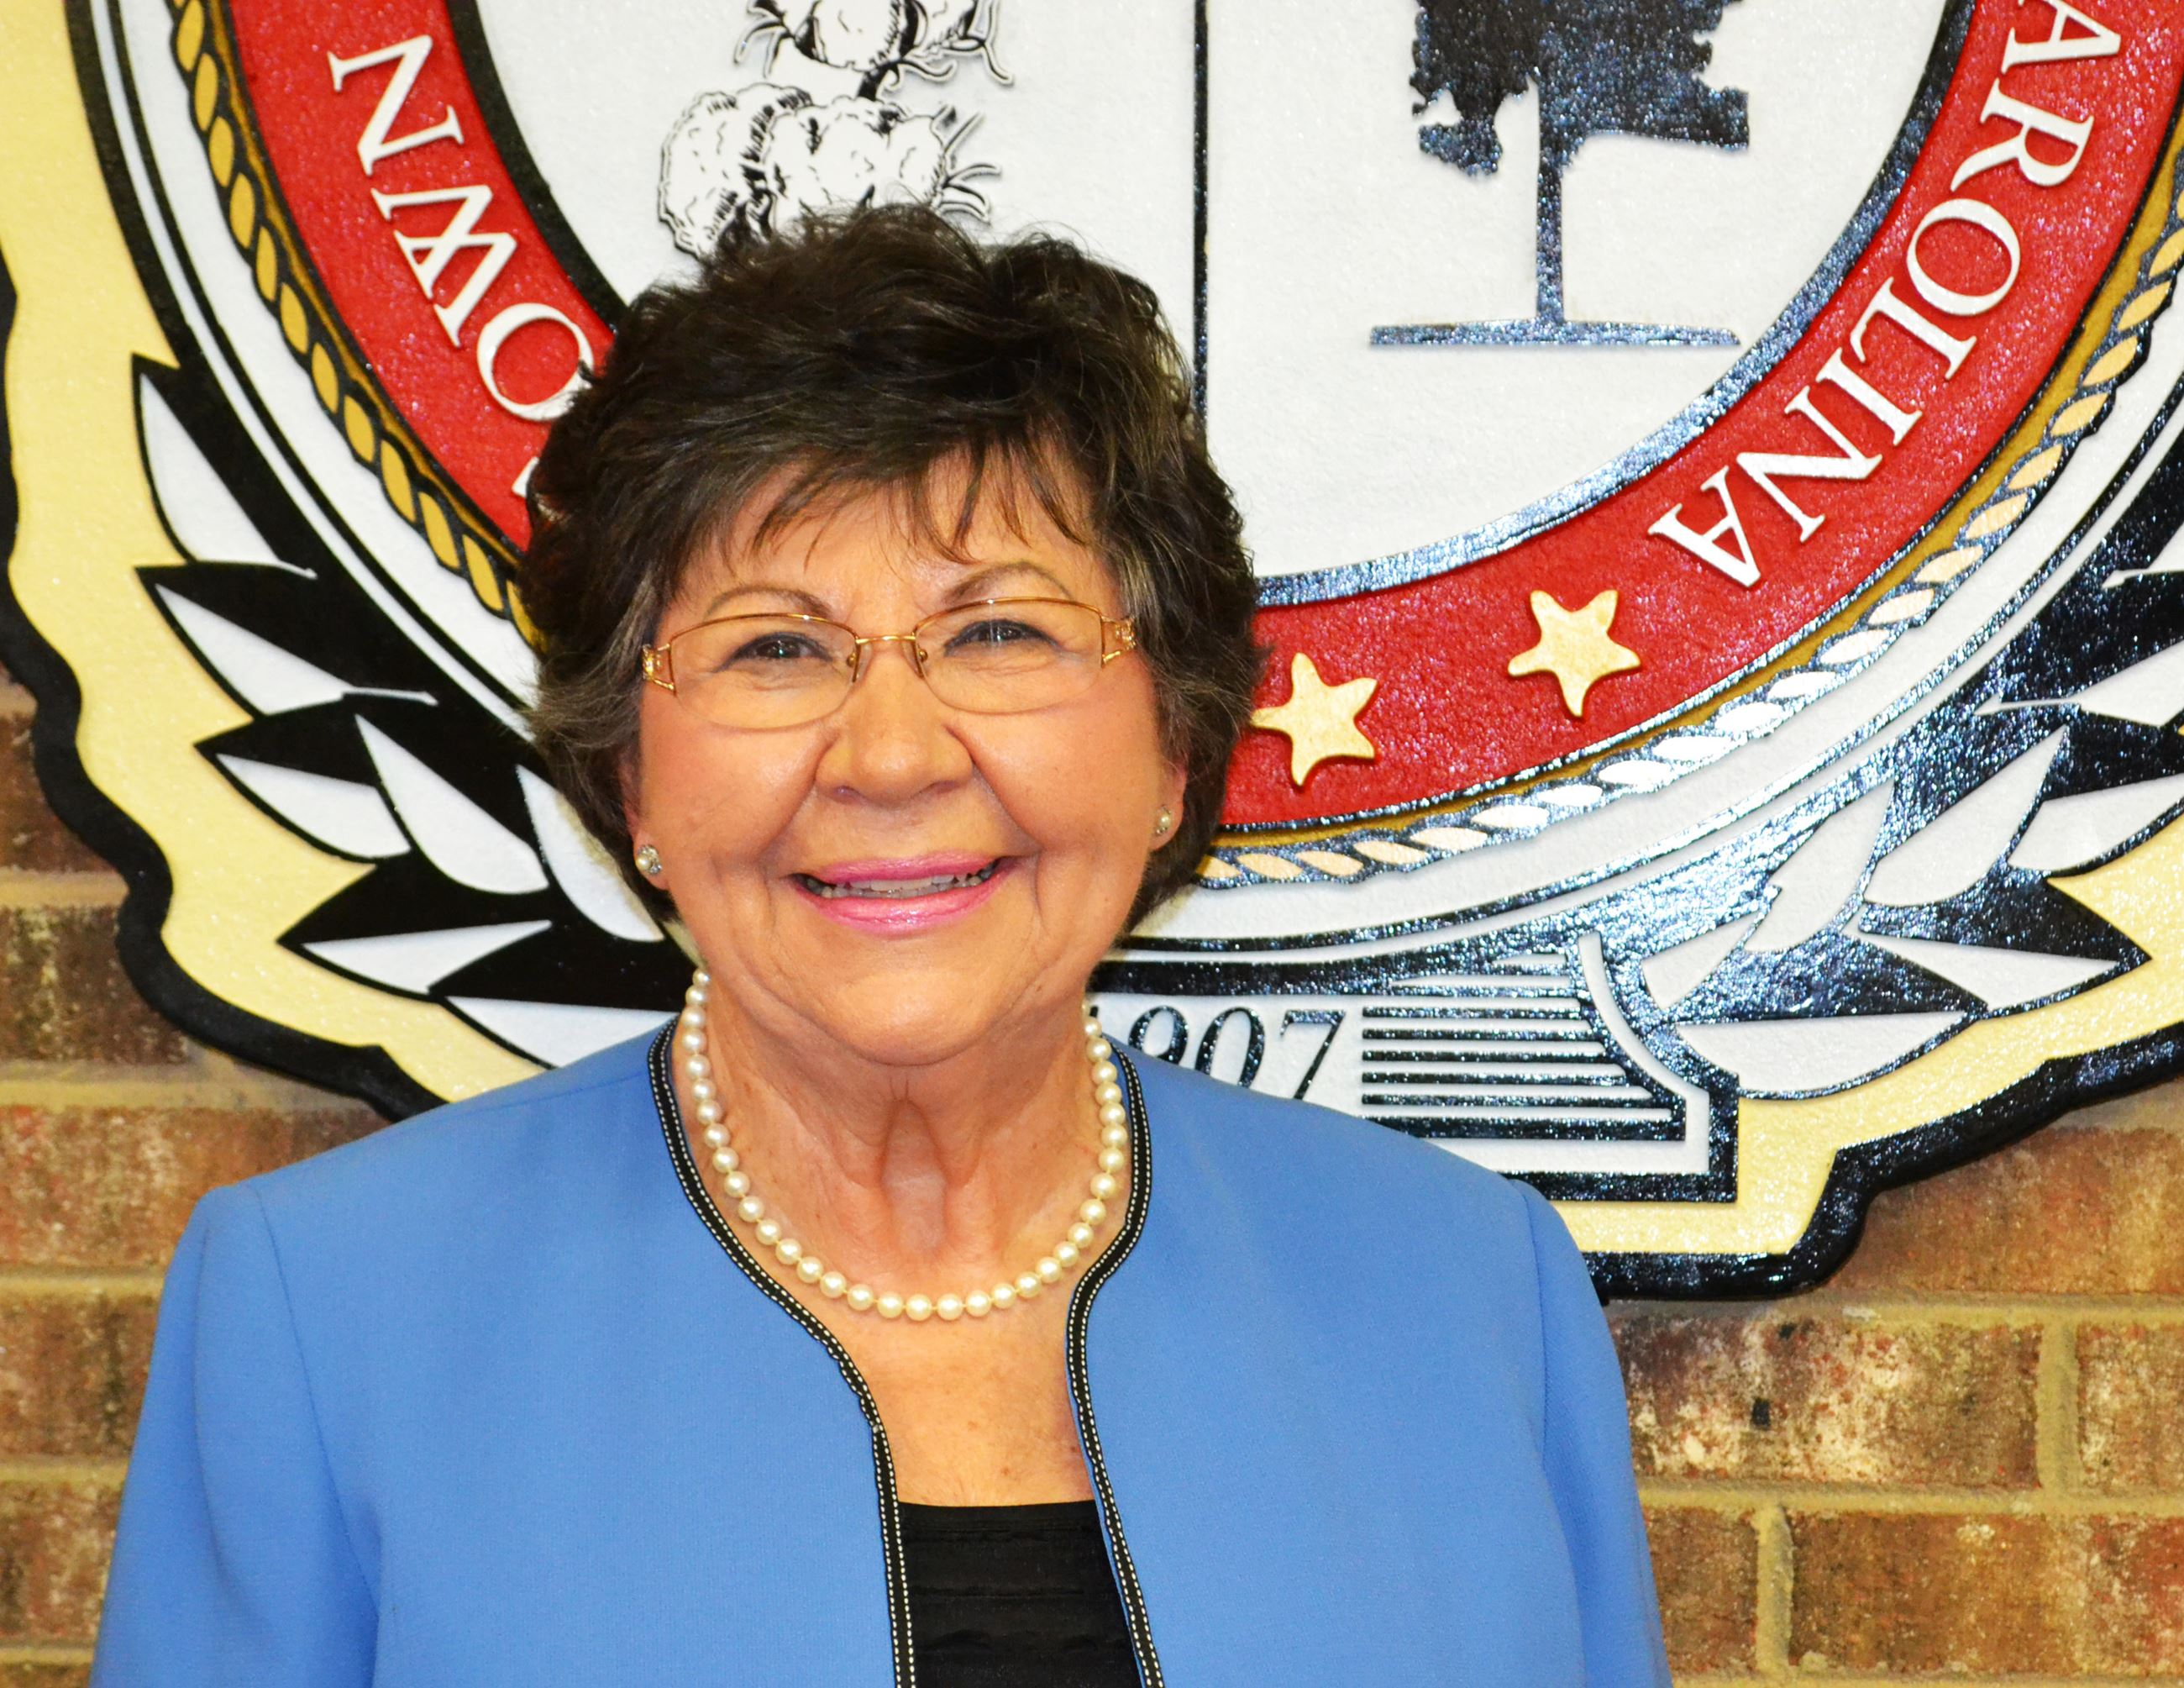 Former Town Council Member Shirley Howe